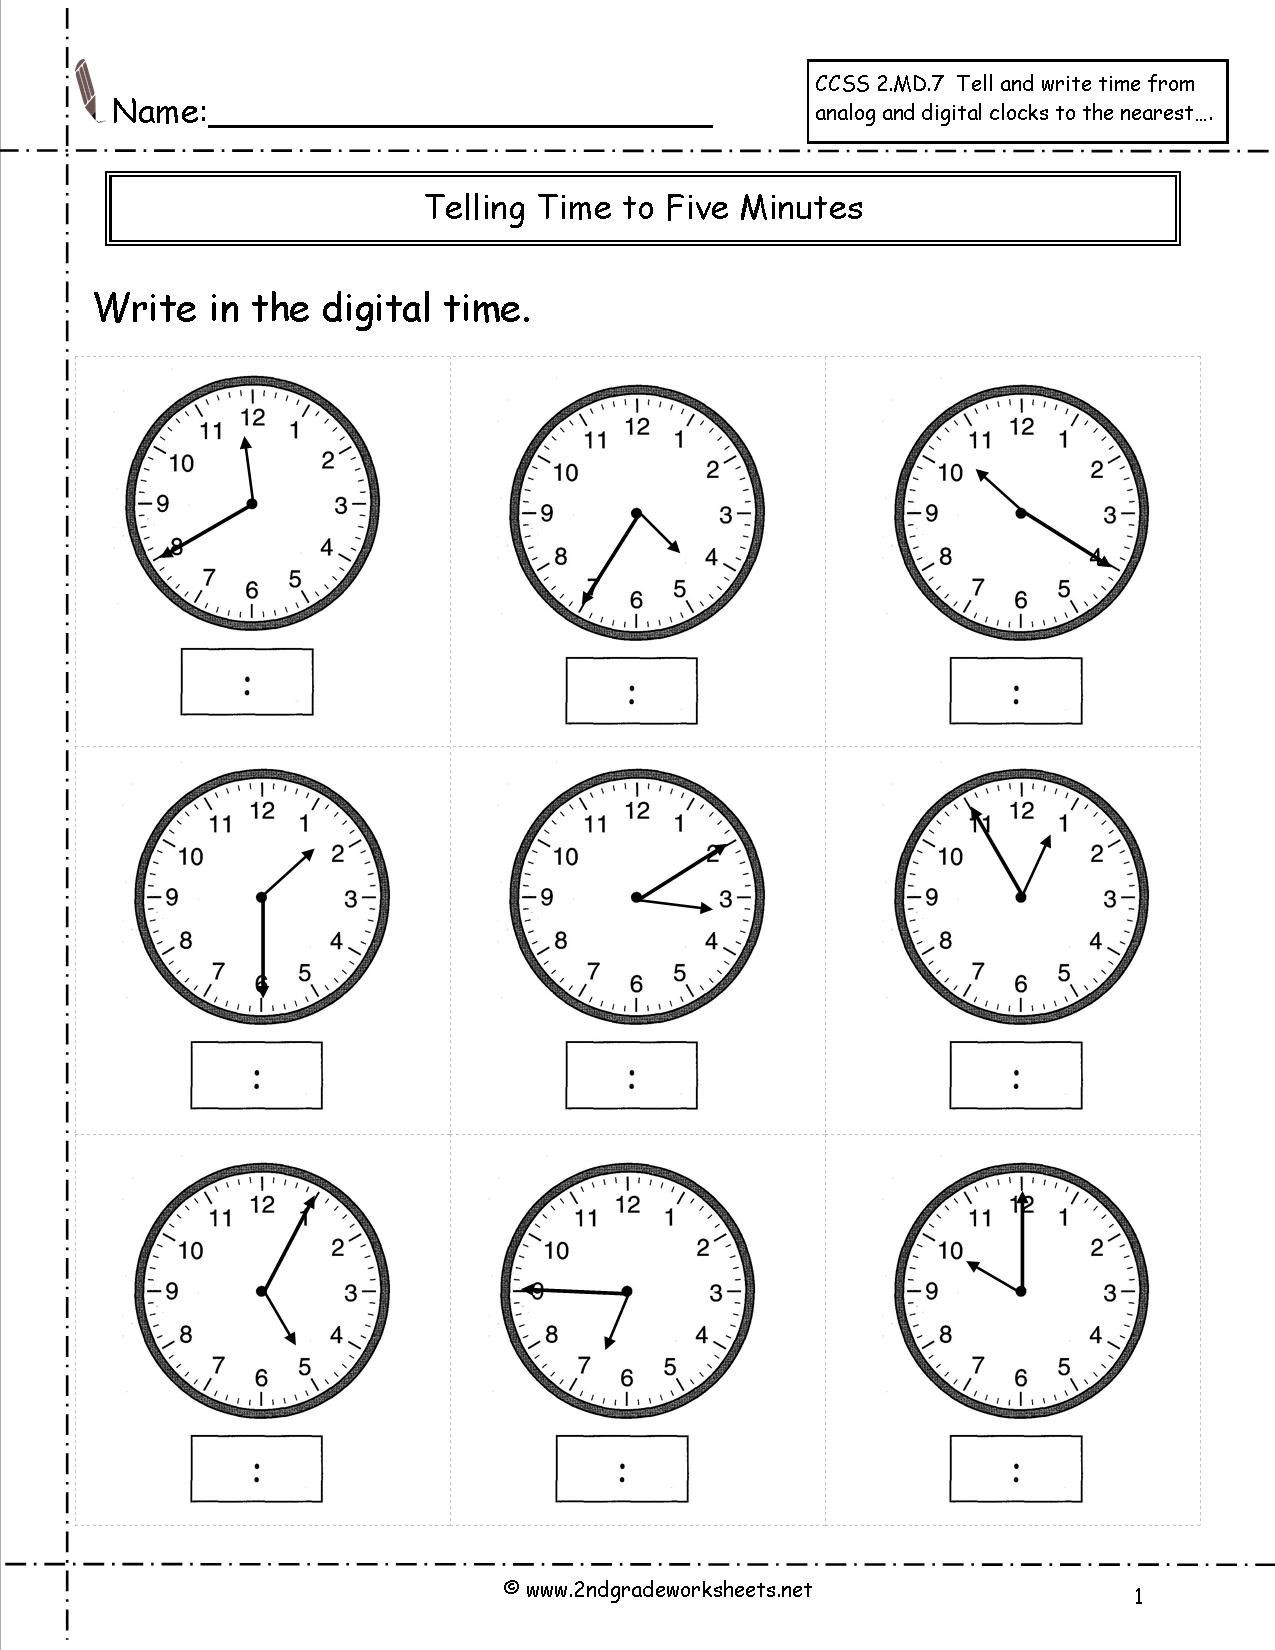 Elapsed Time Worksheets 3rd Grade Telling Time to Nearest Five Minutes Worksheet